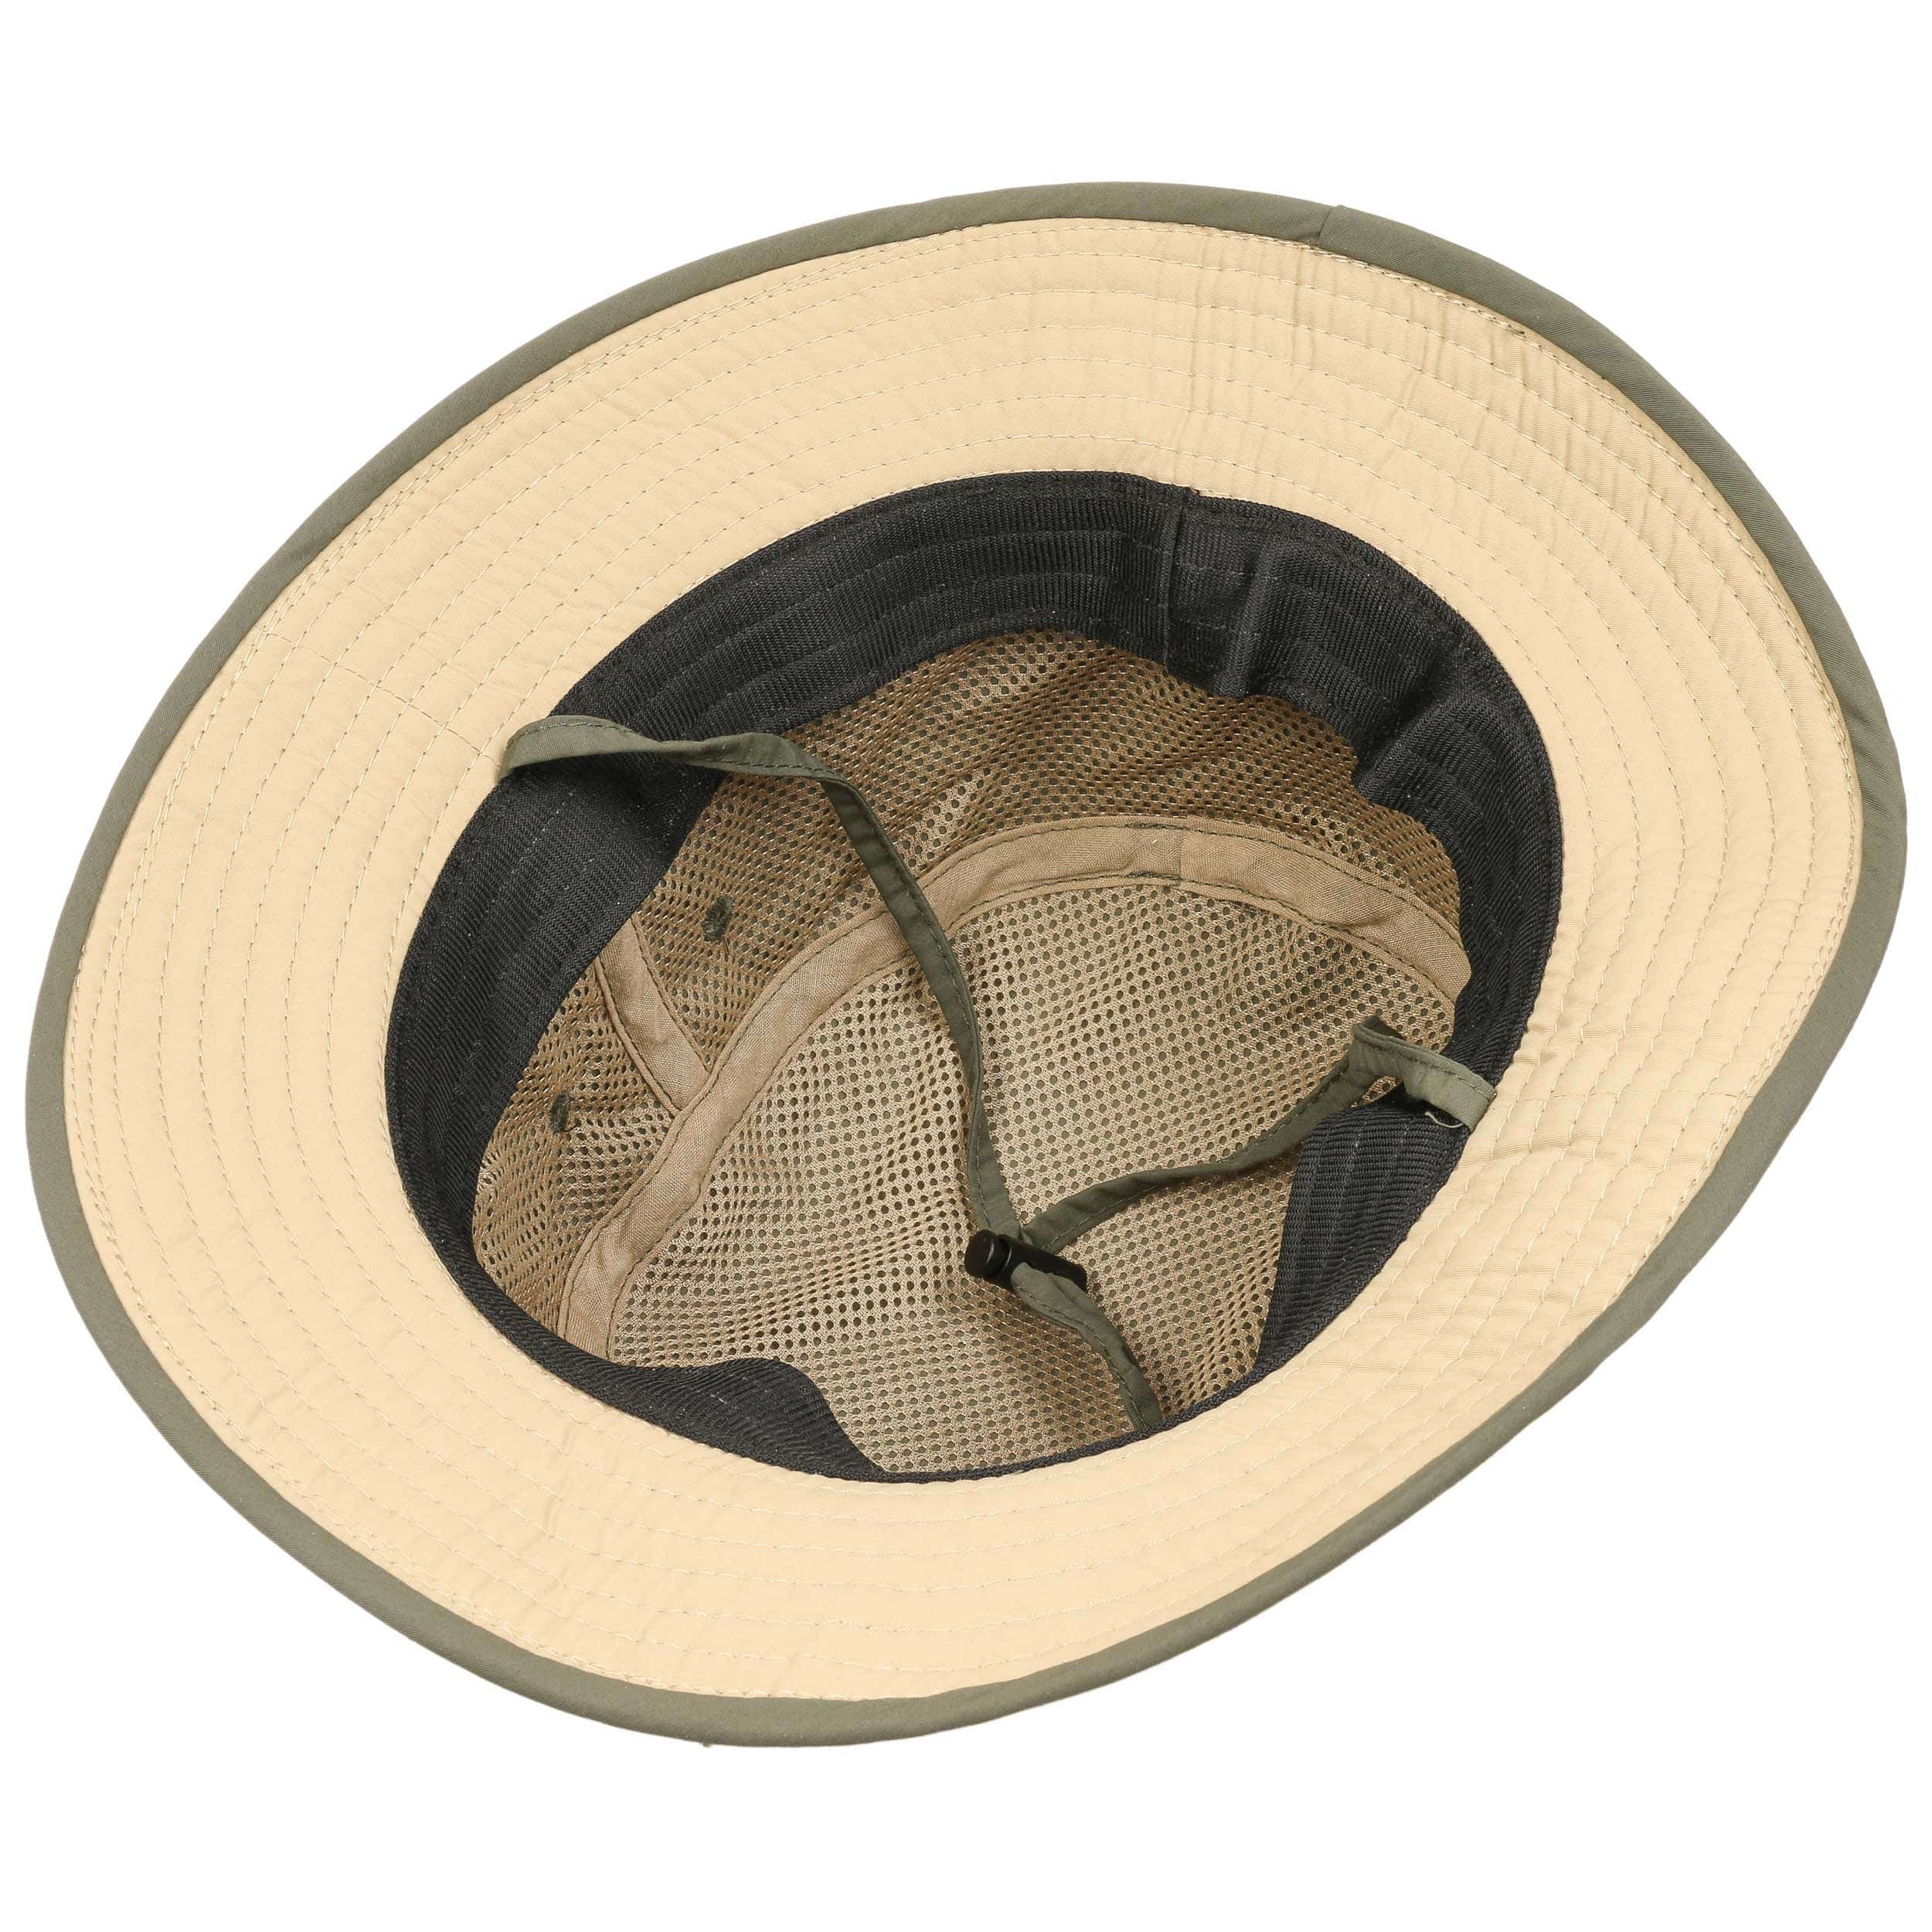 57e99891a9b39 ... Supplex Fishing Hat with Chin Strap by Lipodo - olive 2 ...